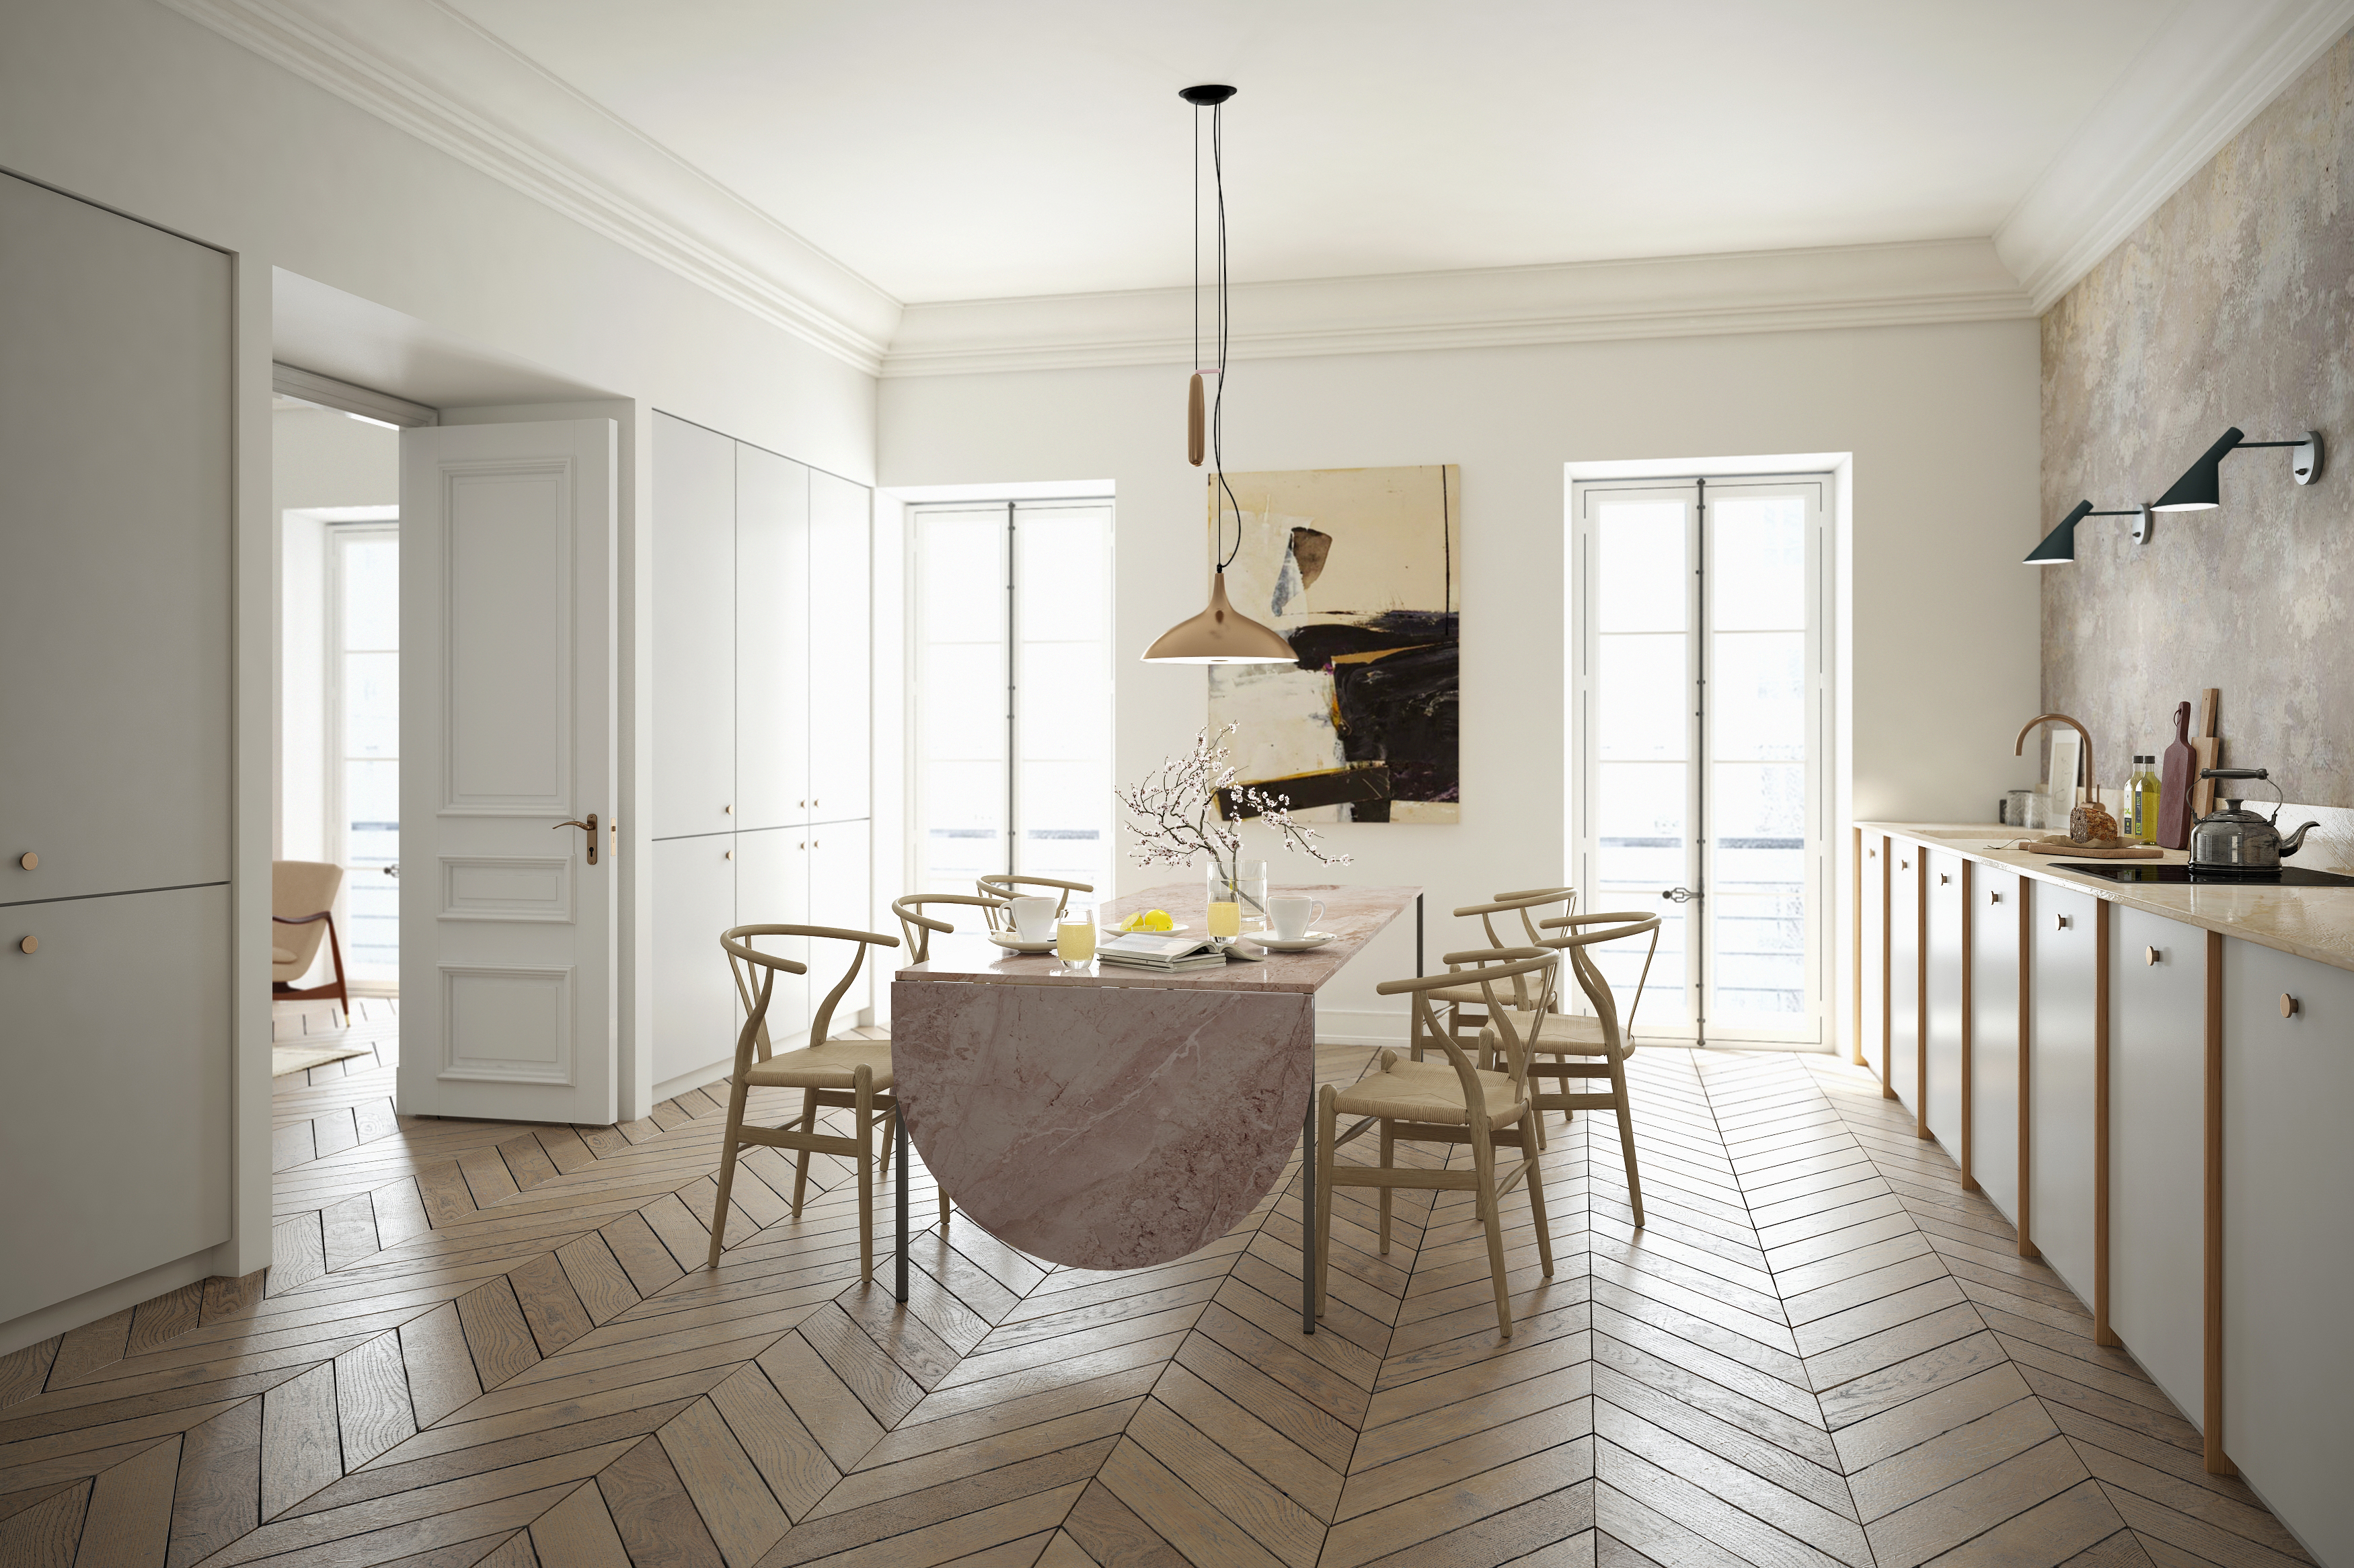 a-s-helsingo-ingaro-kitchen-with-parasol-brass-handles